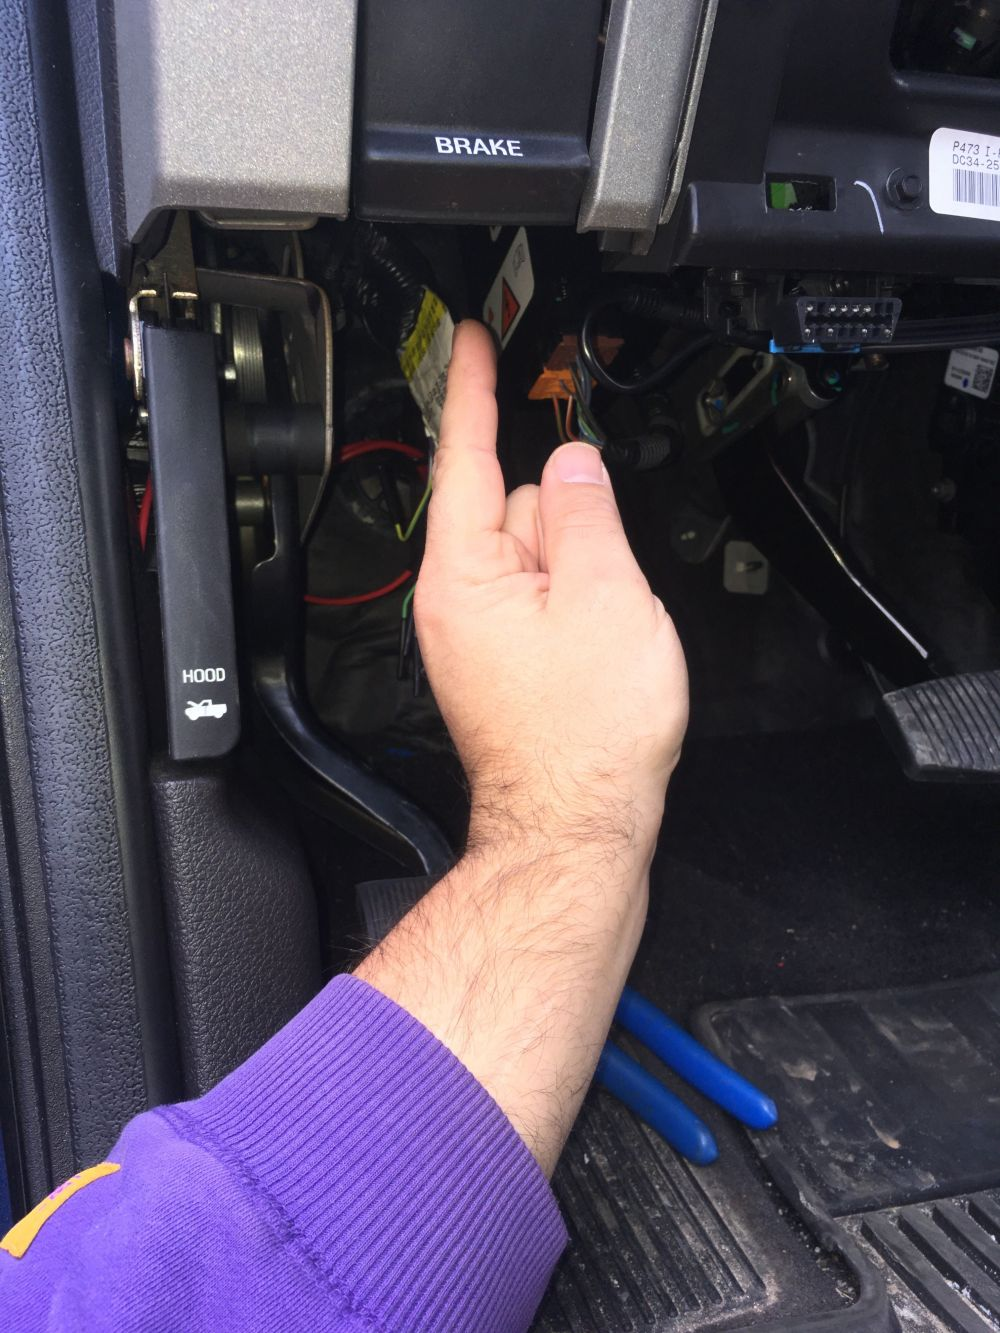 medium resolution of upfitter switch wires are above the accessory bundle almost in line with your knee when sitting down they are folded over and hard to see